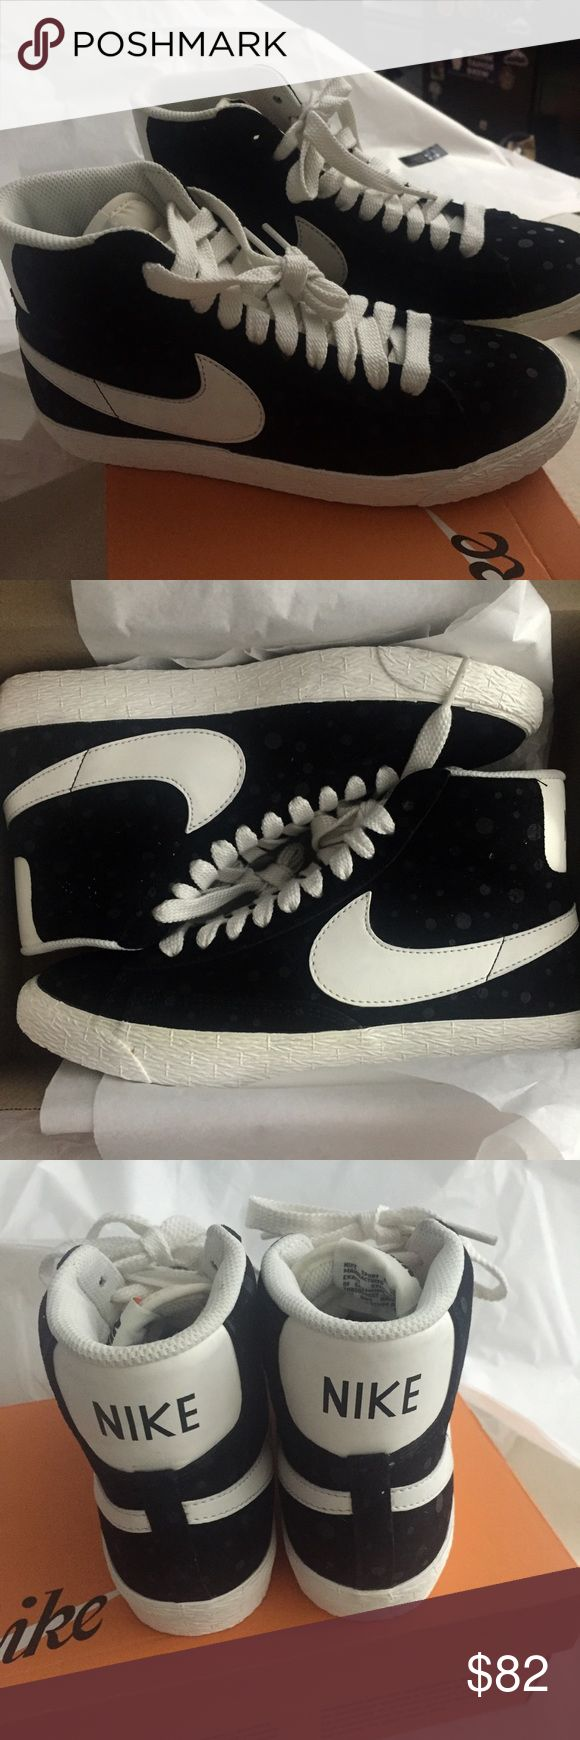 Brand new Nike Blazer Vintage Brand new never been worn . Size6.5 Nike Shoes Sneakers